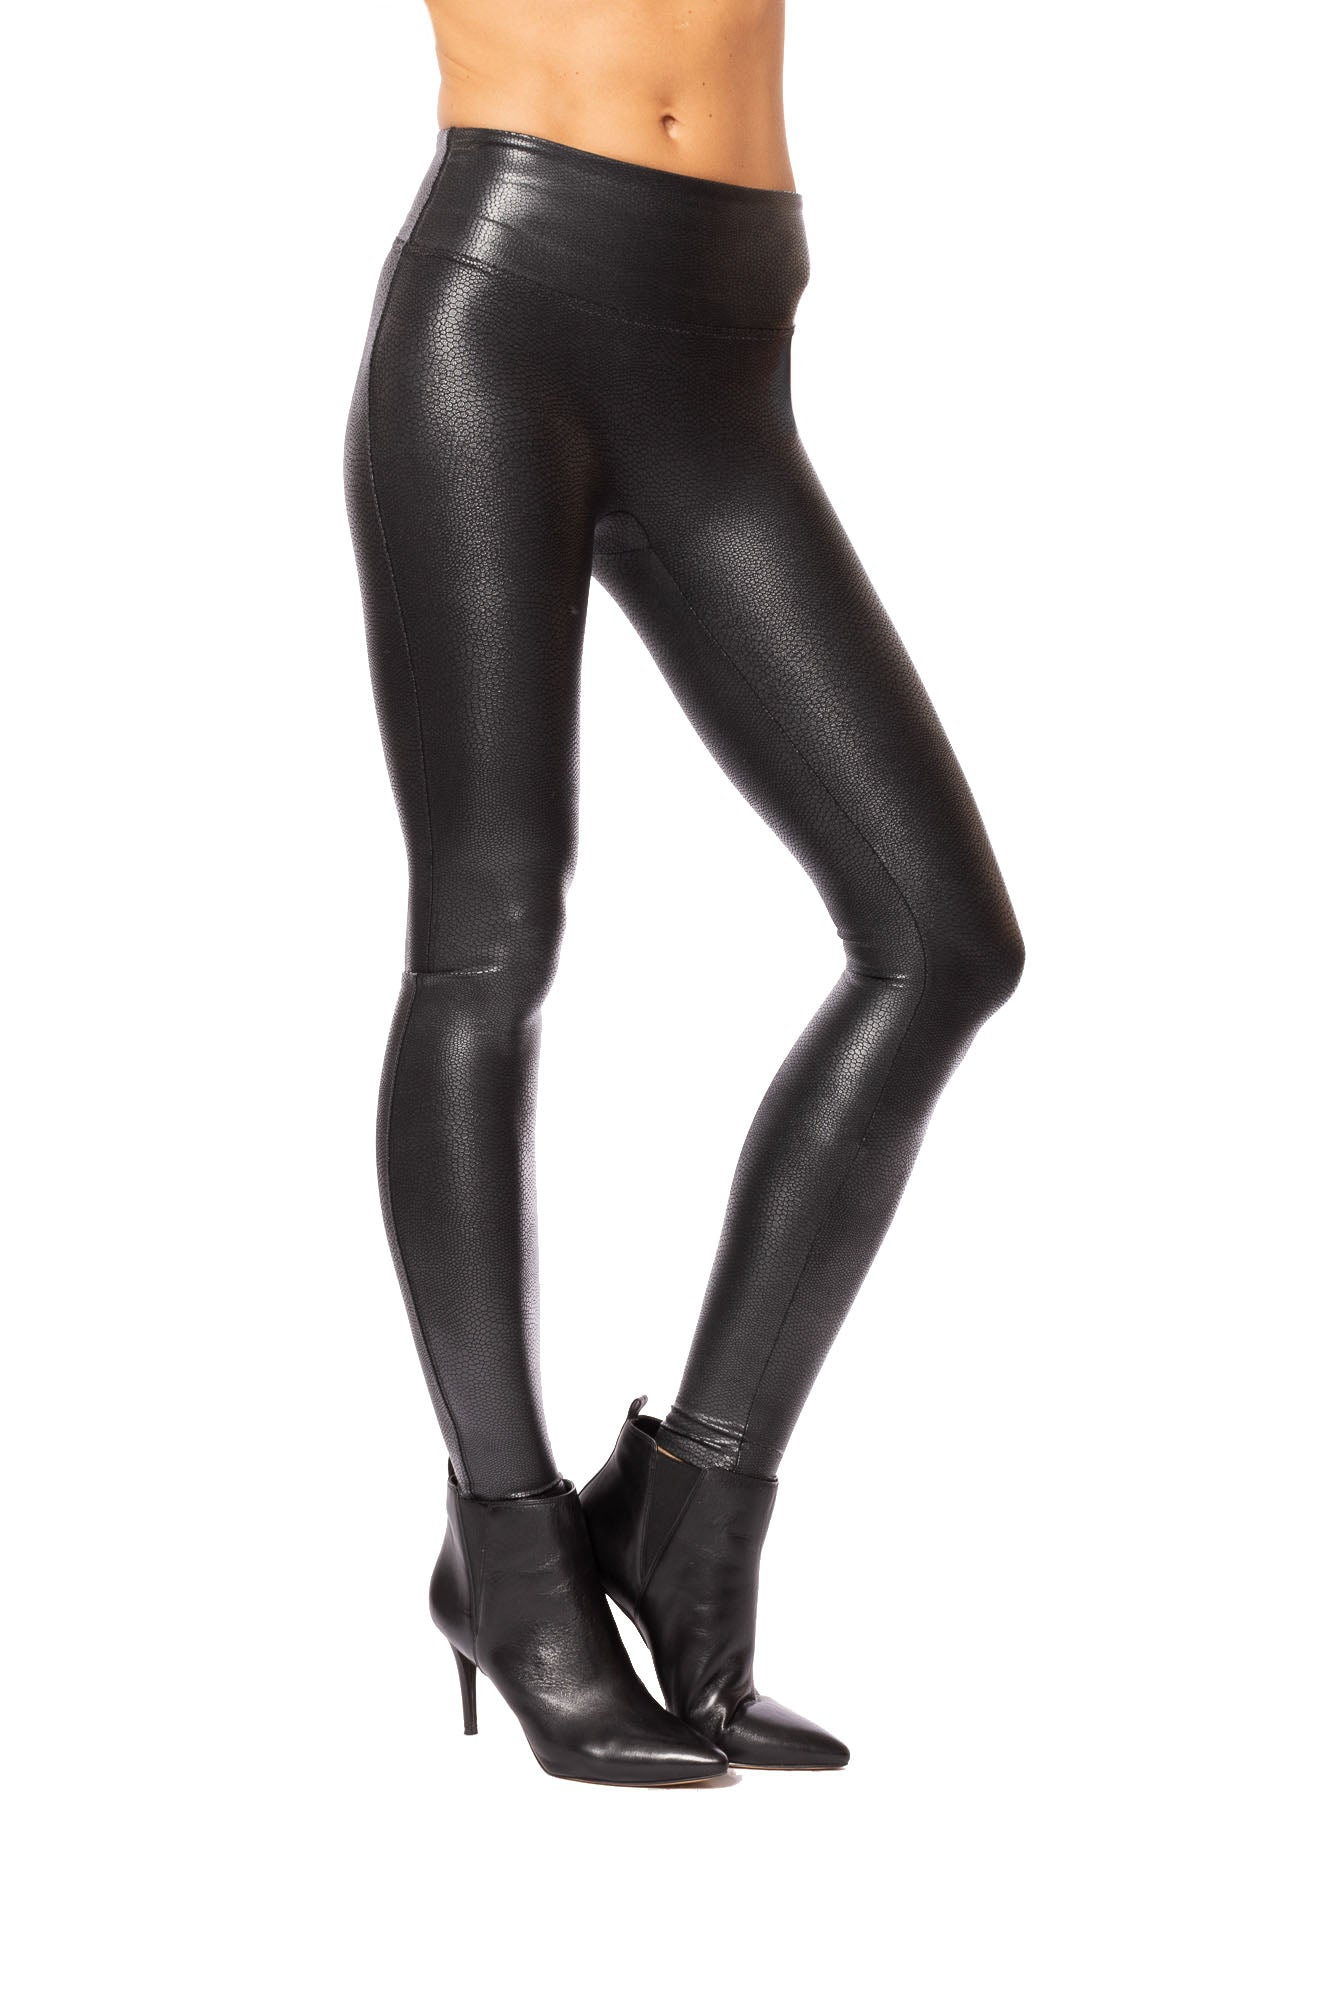 Spanx - Faux Leather Croc Leggings (20186R, Black)